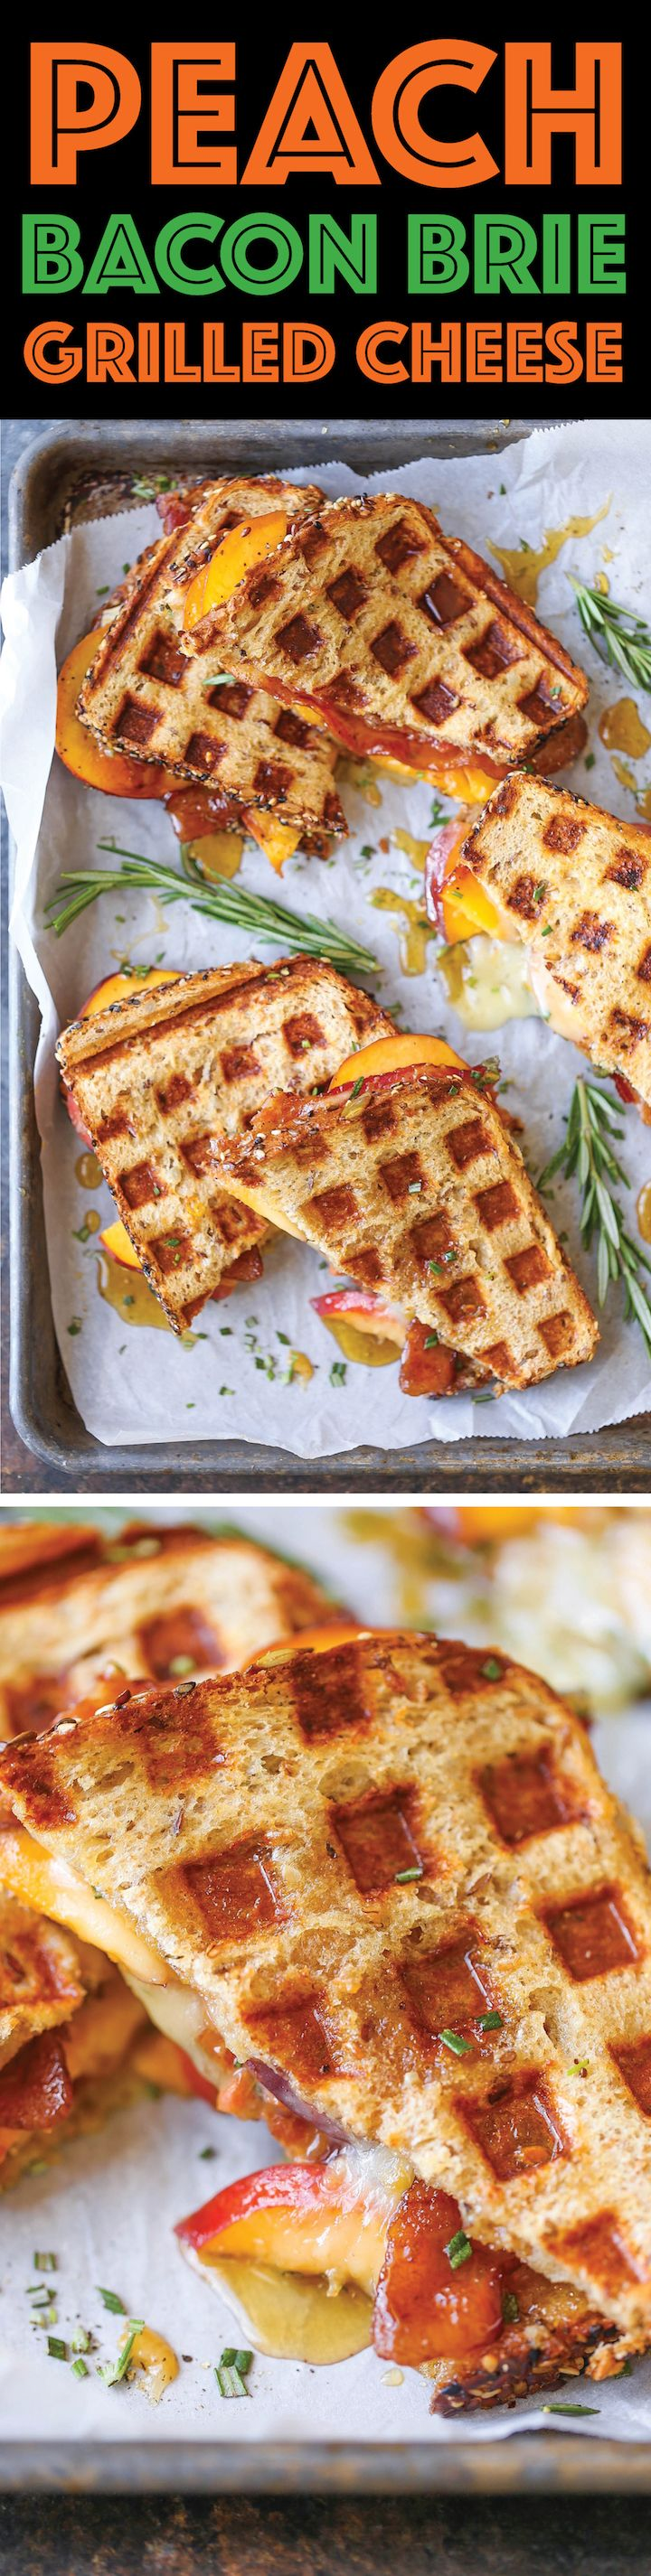 Peach Bacon Brie Grilled Cheese - Fresh peaches, peach preserves, crisp bacon…